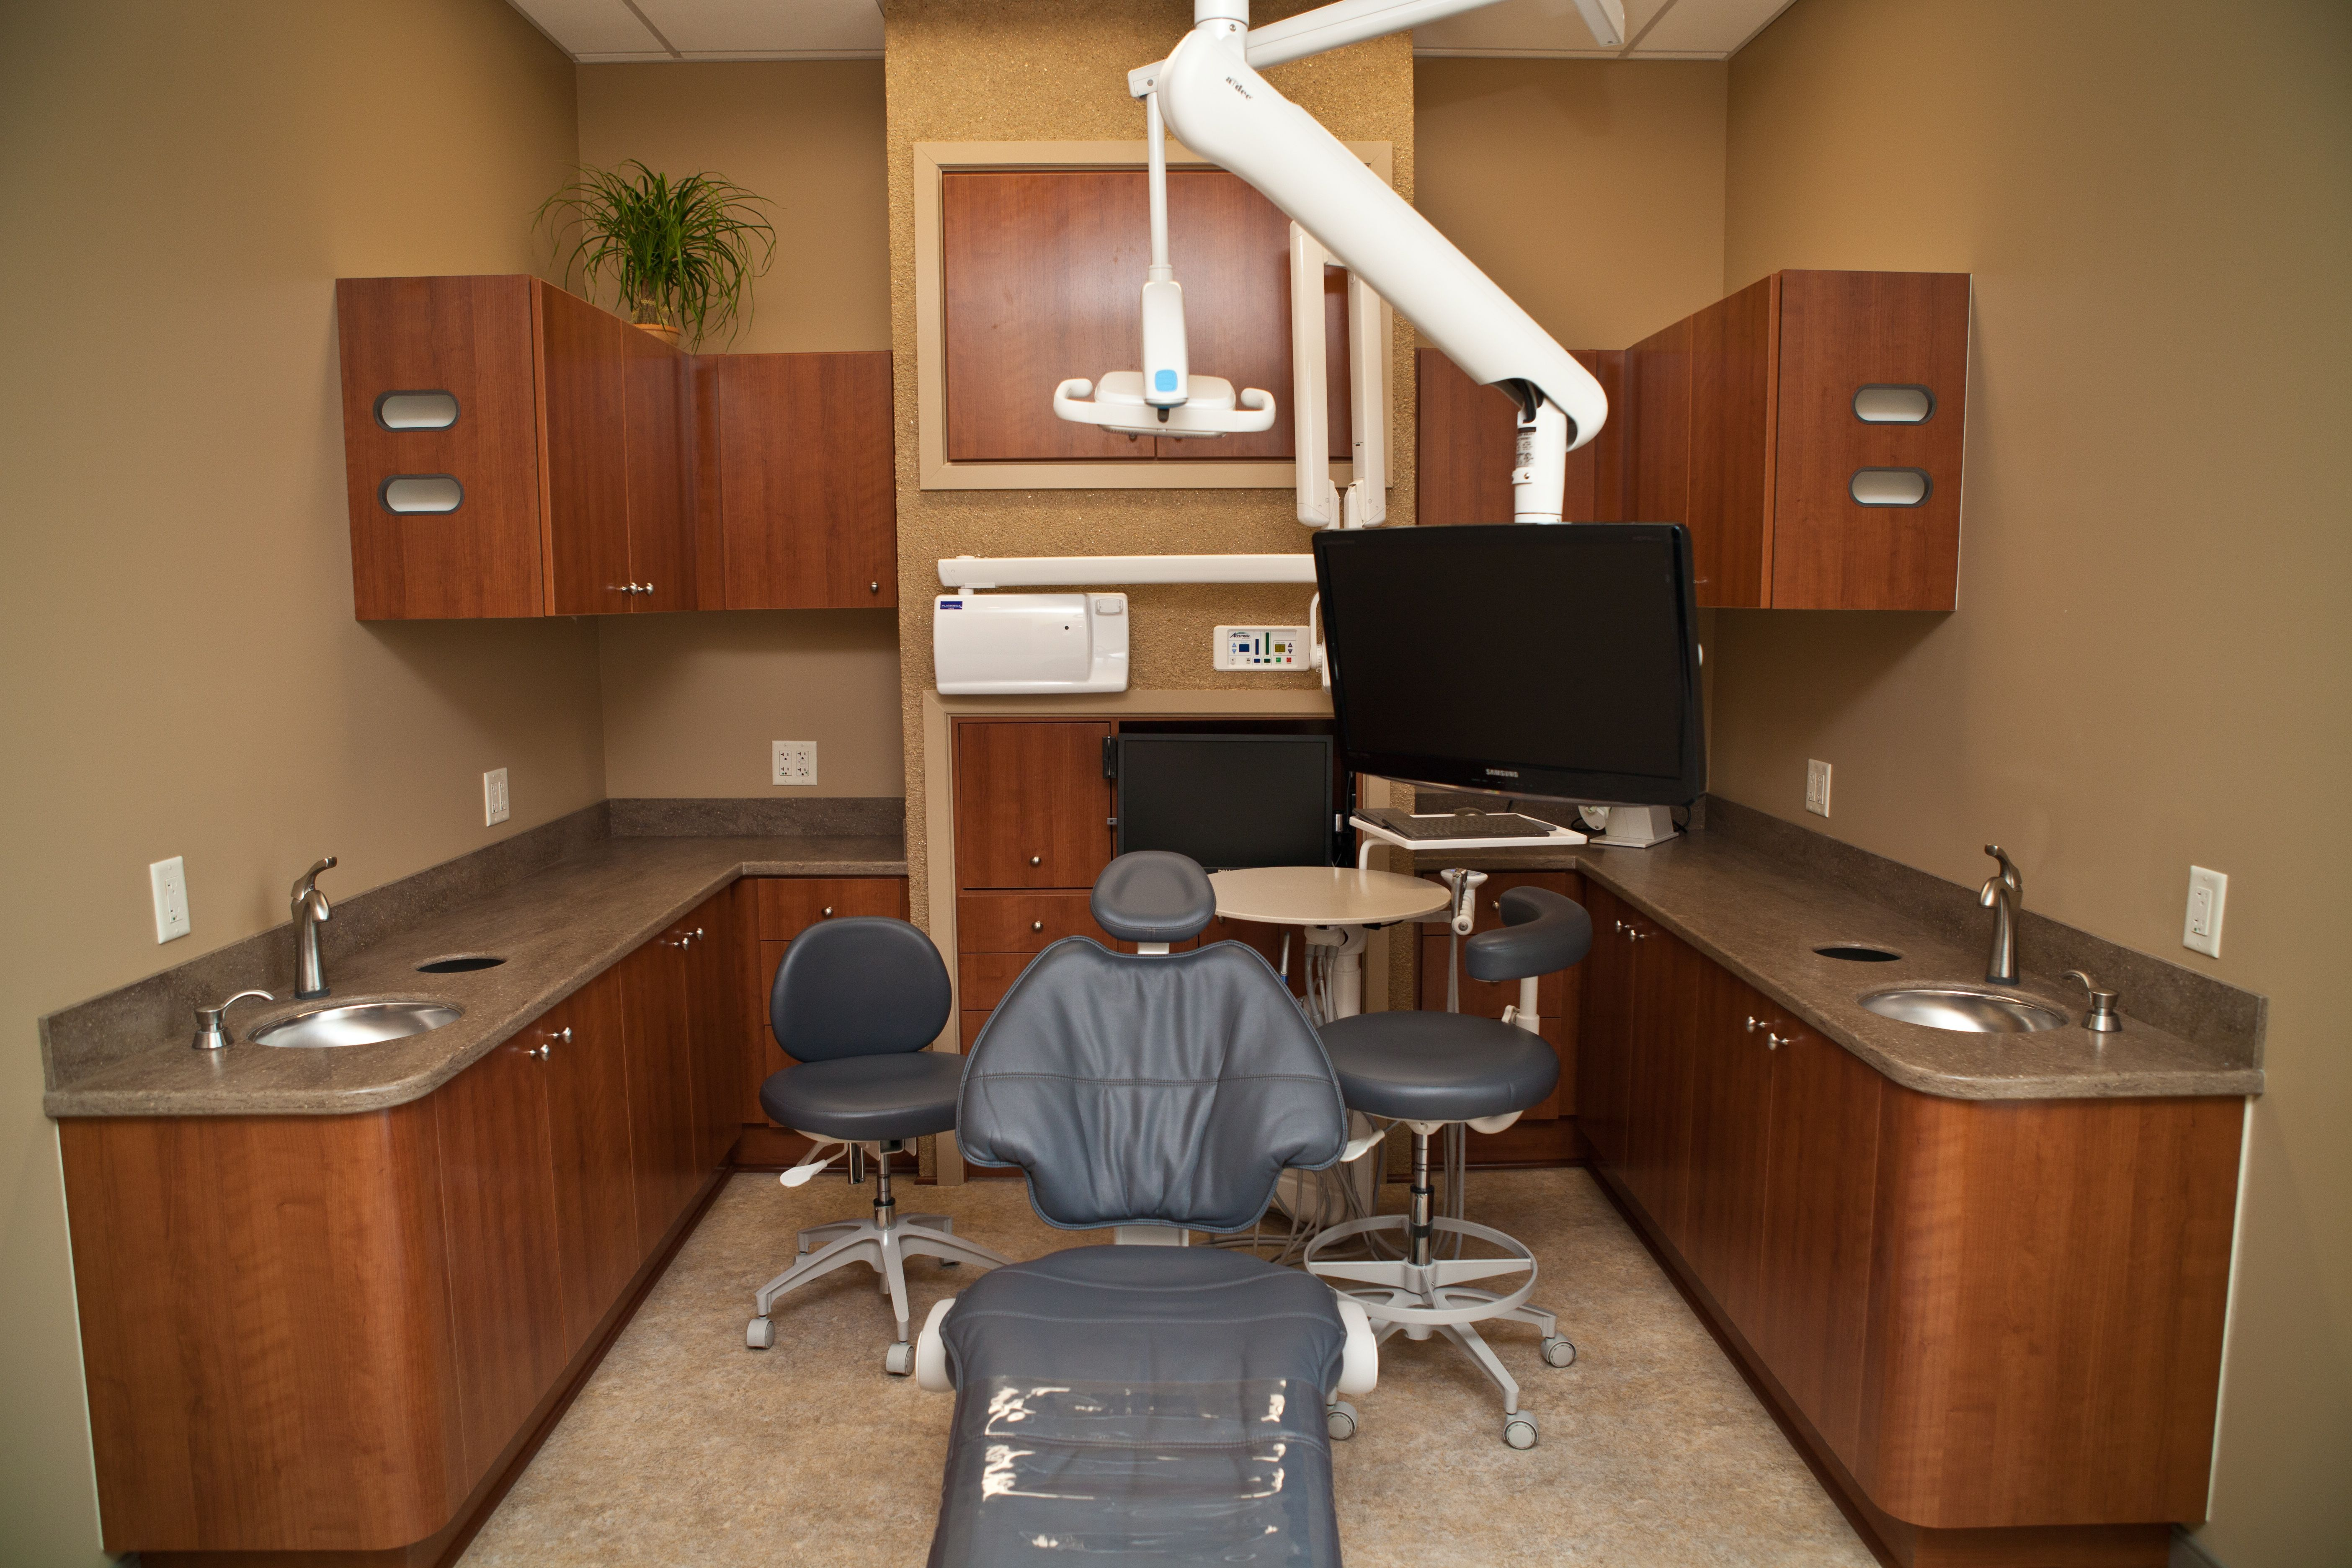 dental treatment room with all the amenities: Bose noise reduction headphones, neck pillows, relaxation chair, & TV